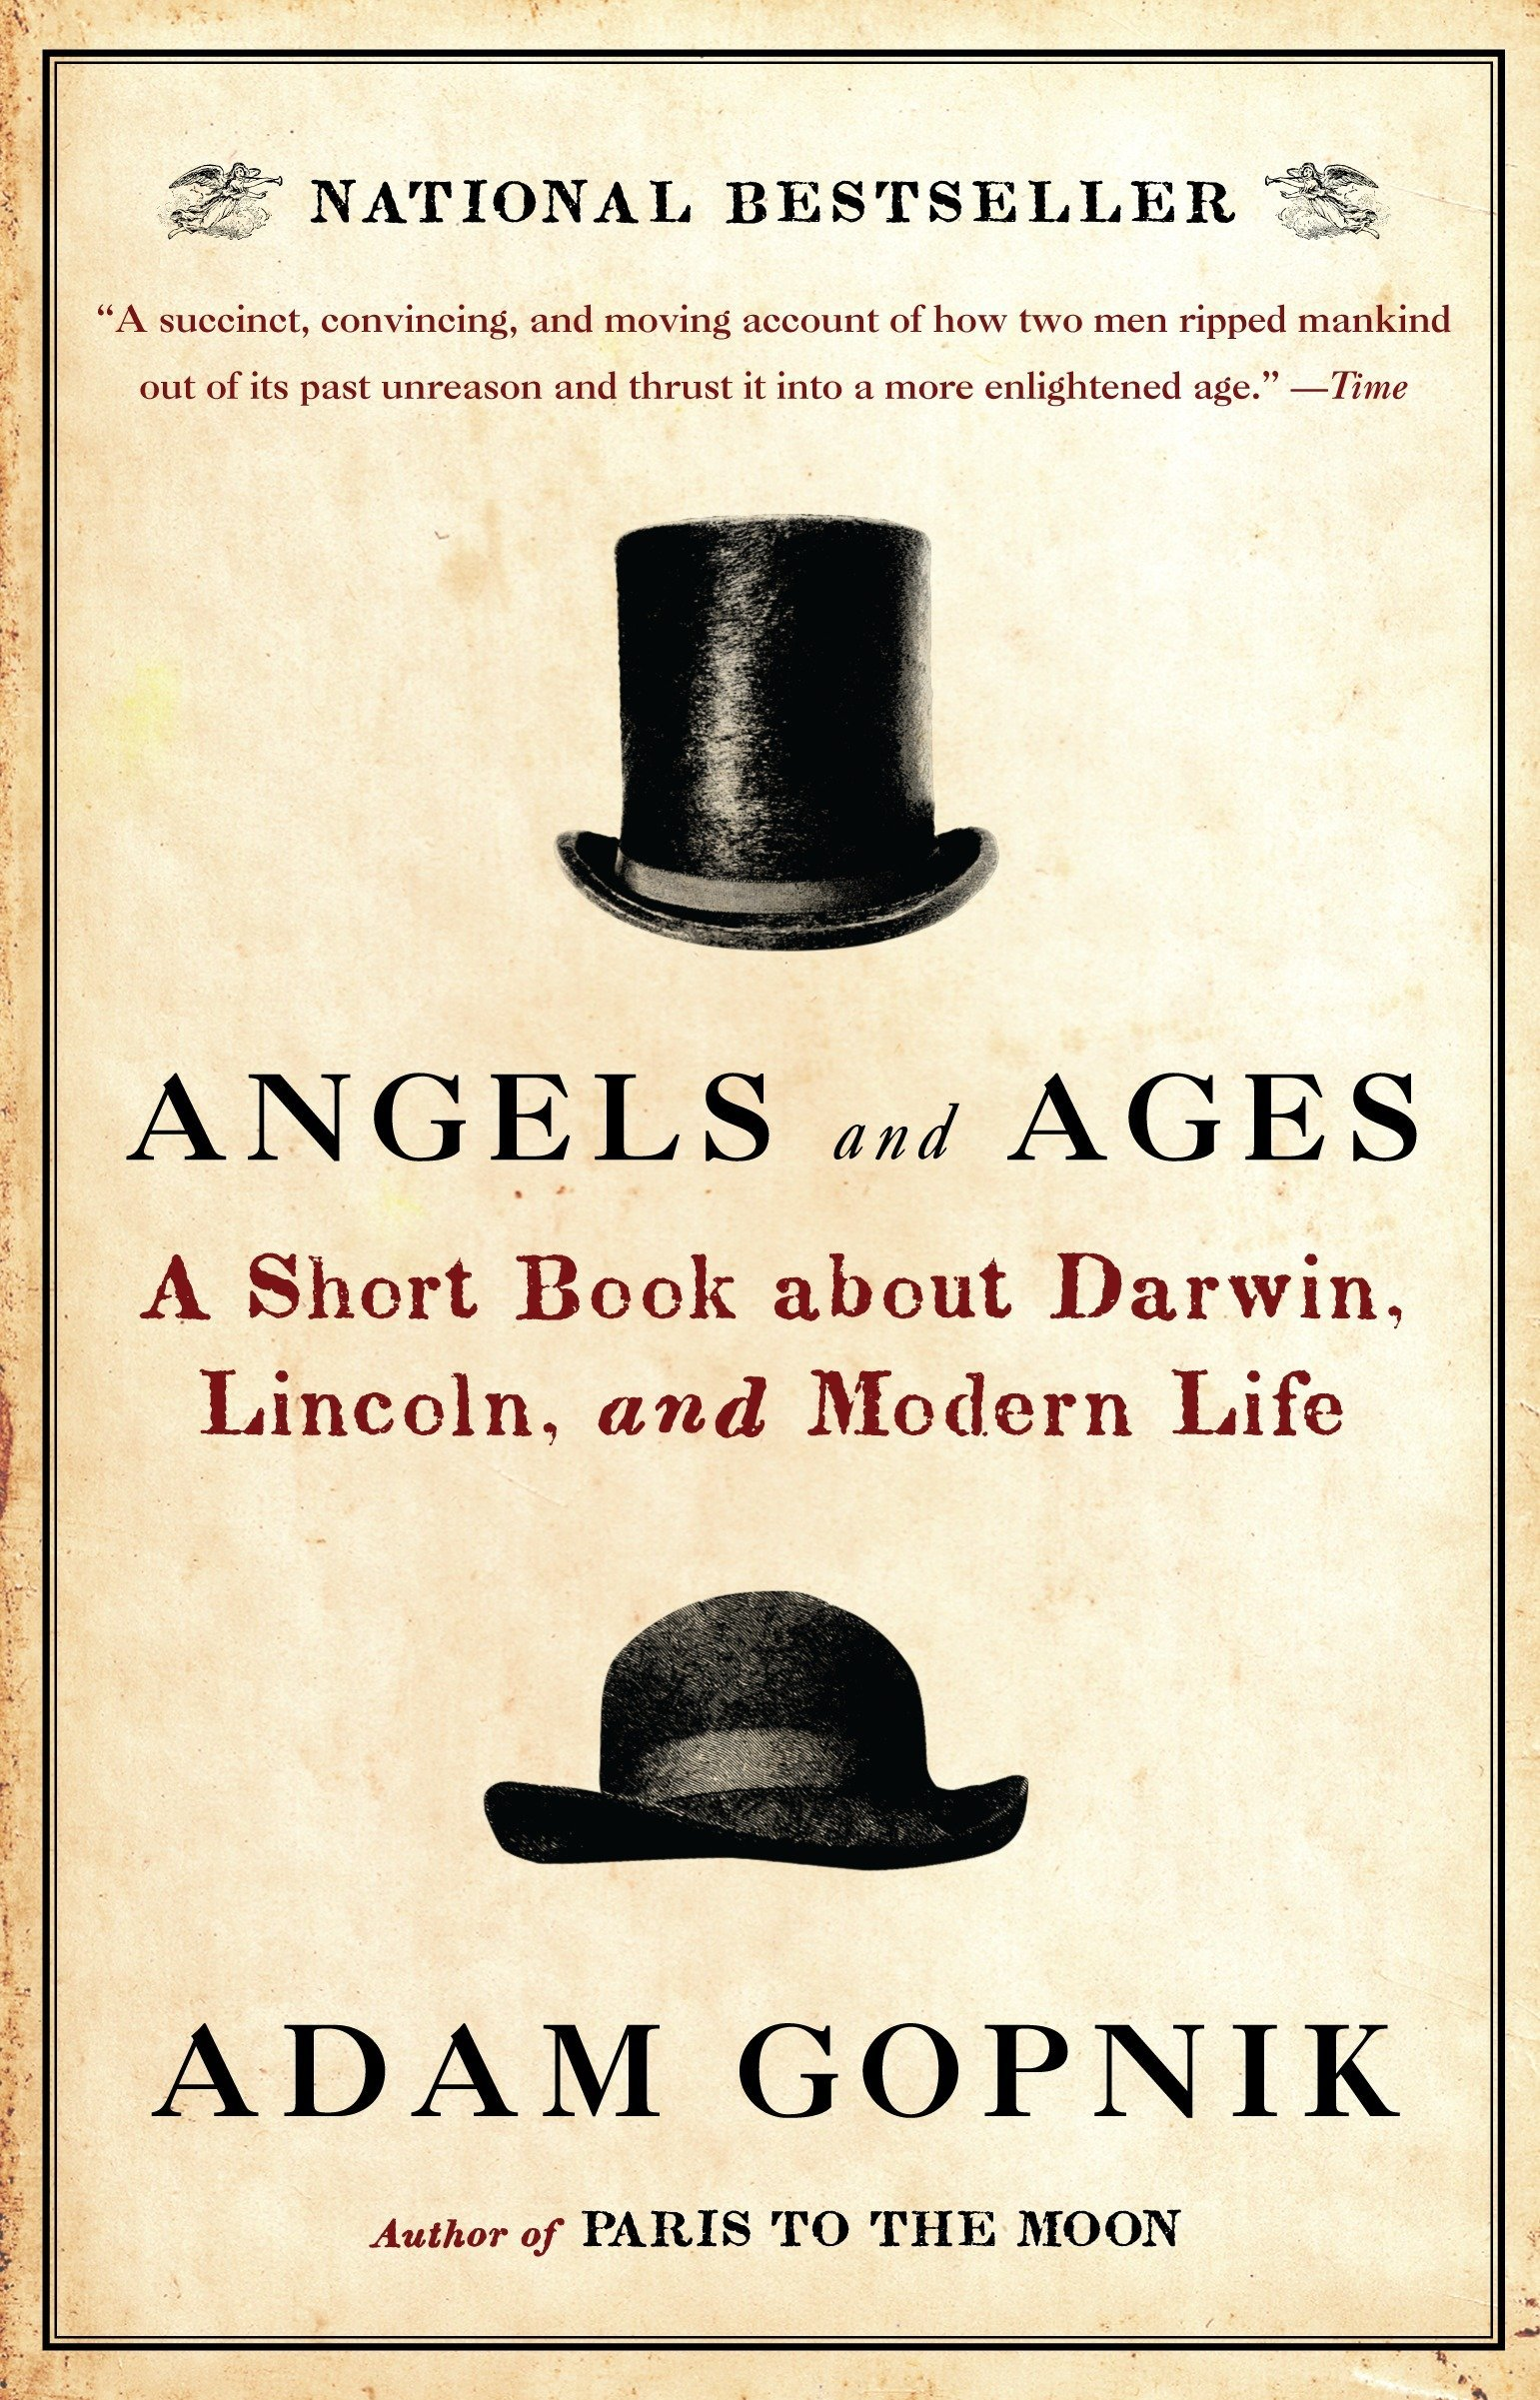 Angels and Ages: Lincoln, Darwin, and the Birth of the Modern Age by Vintage